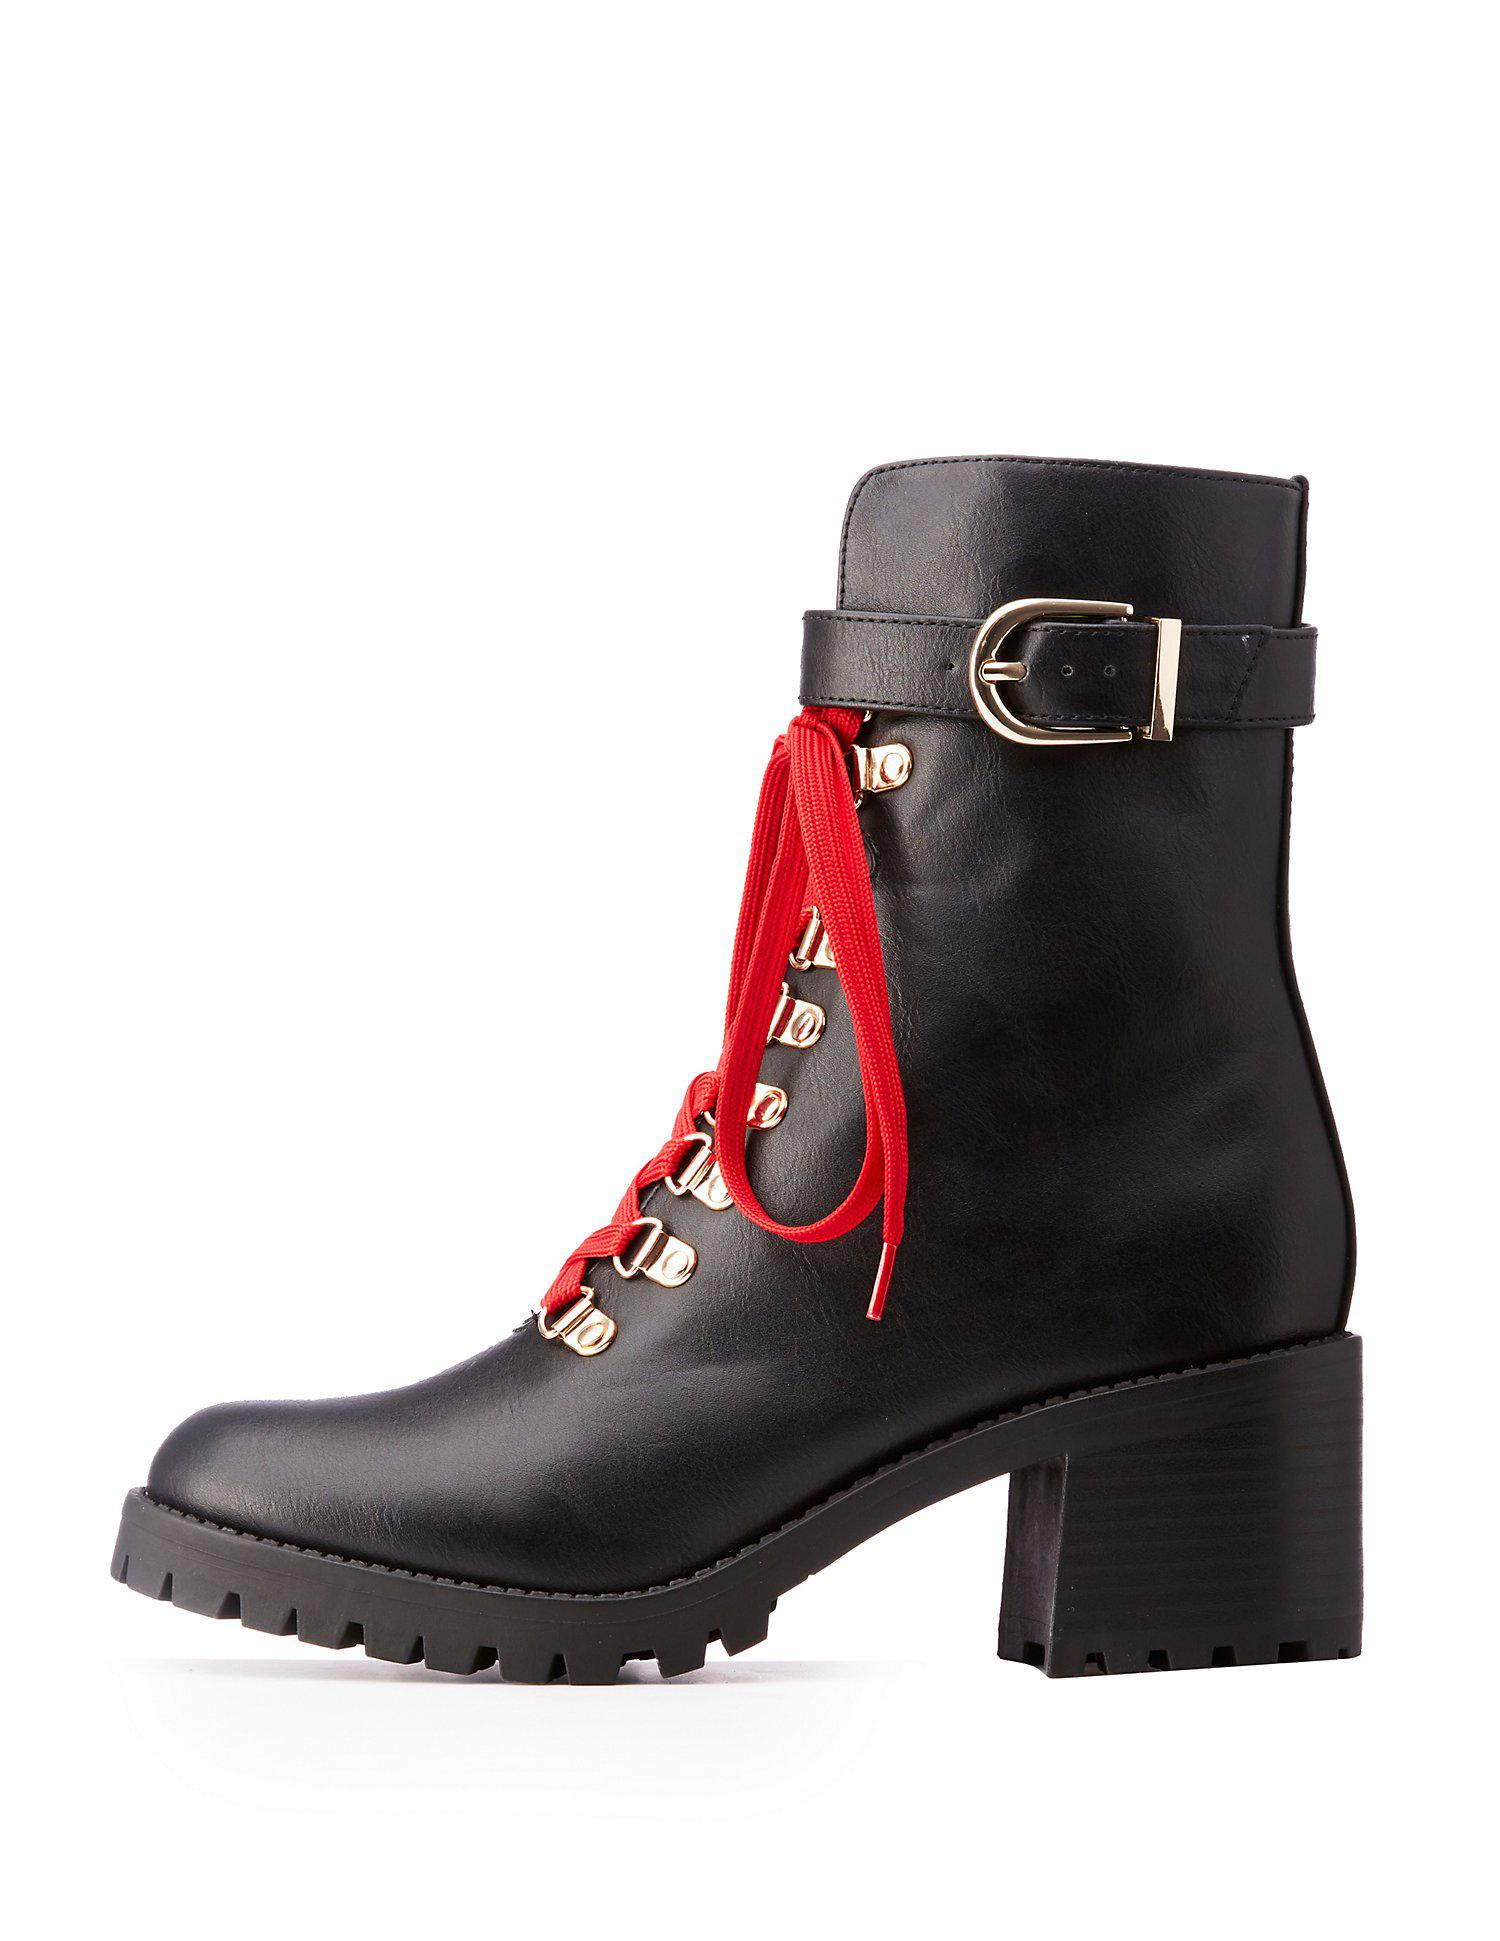 db33e6cca9778 Lyst - Charlotte Russe Lace Up Combat Boots in Black